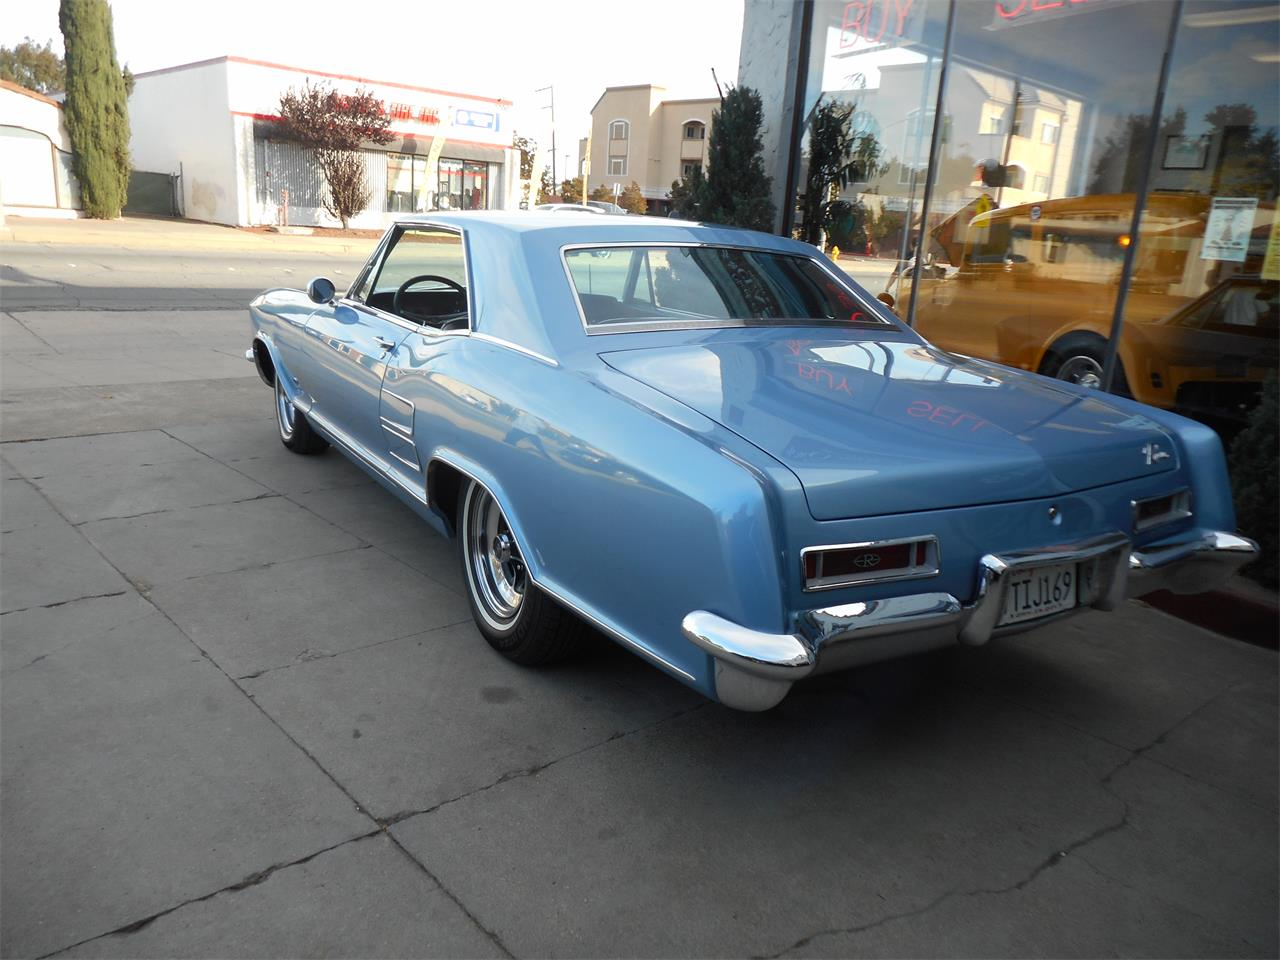 Large Picture of 1964 Riviera located in California - $37,777.00 Offered by Checkered Flag Classic Inc. - OTPX